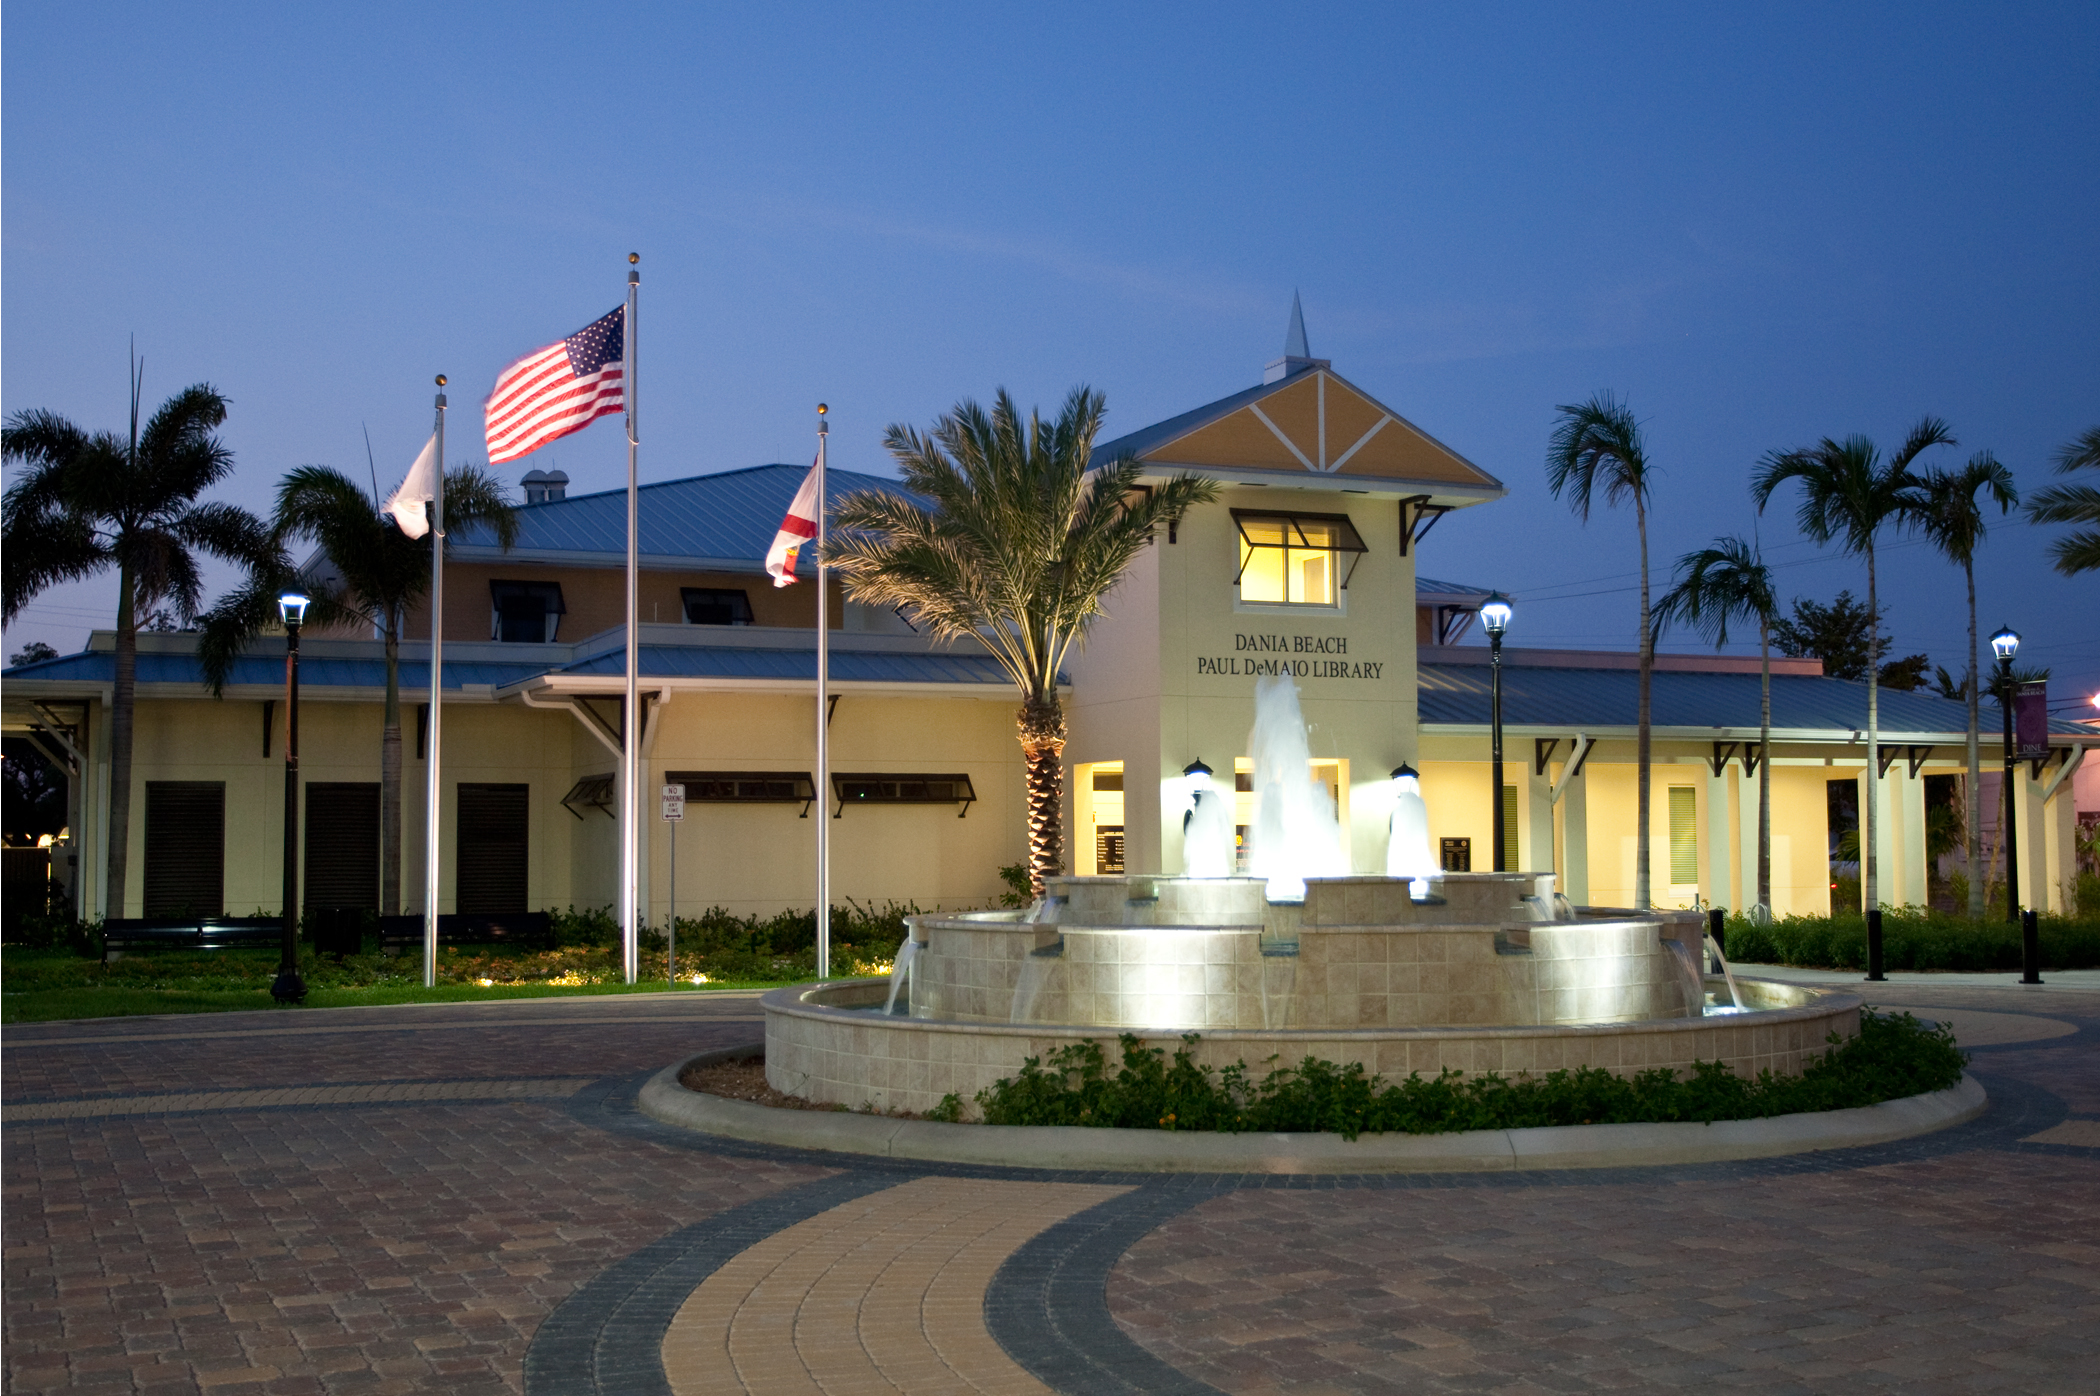 City of Dania Beach Paul DeMaio Library